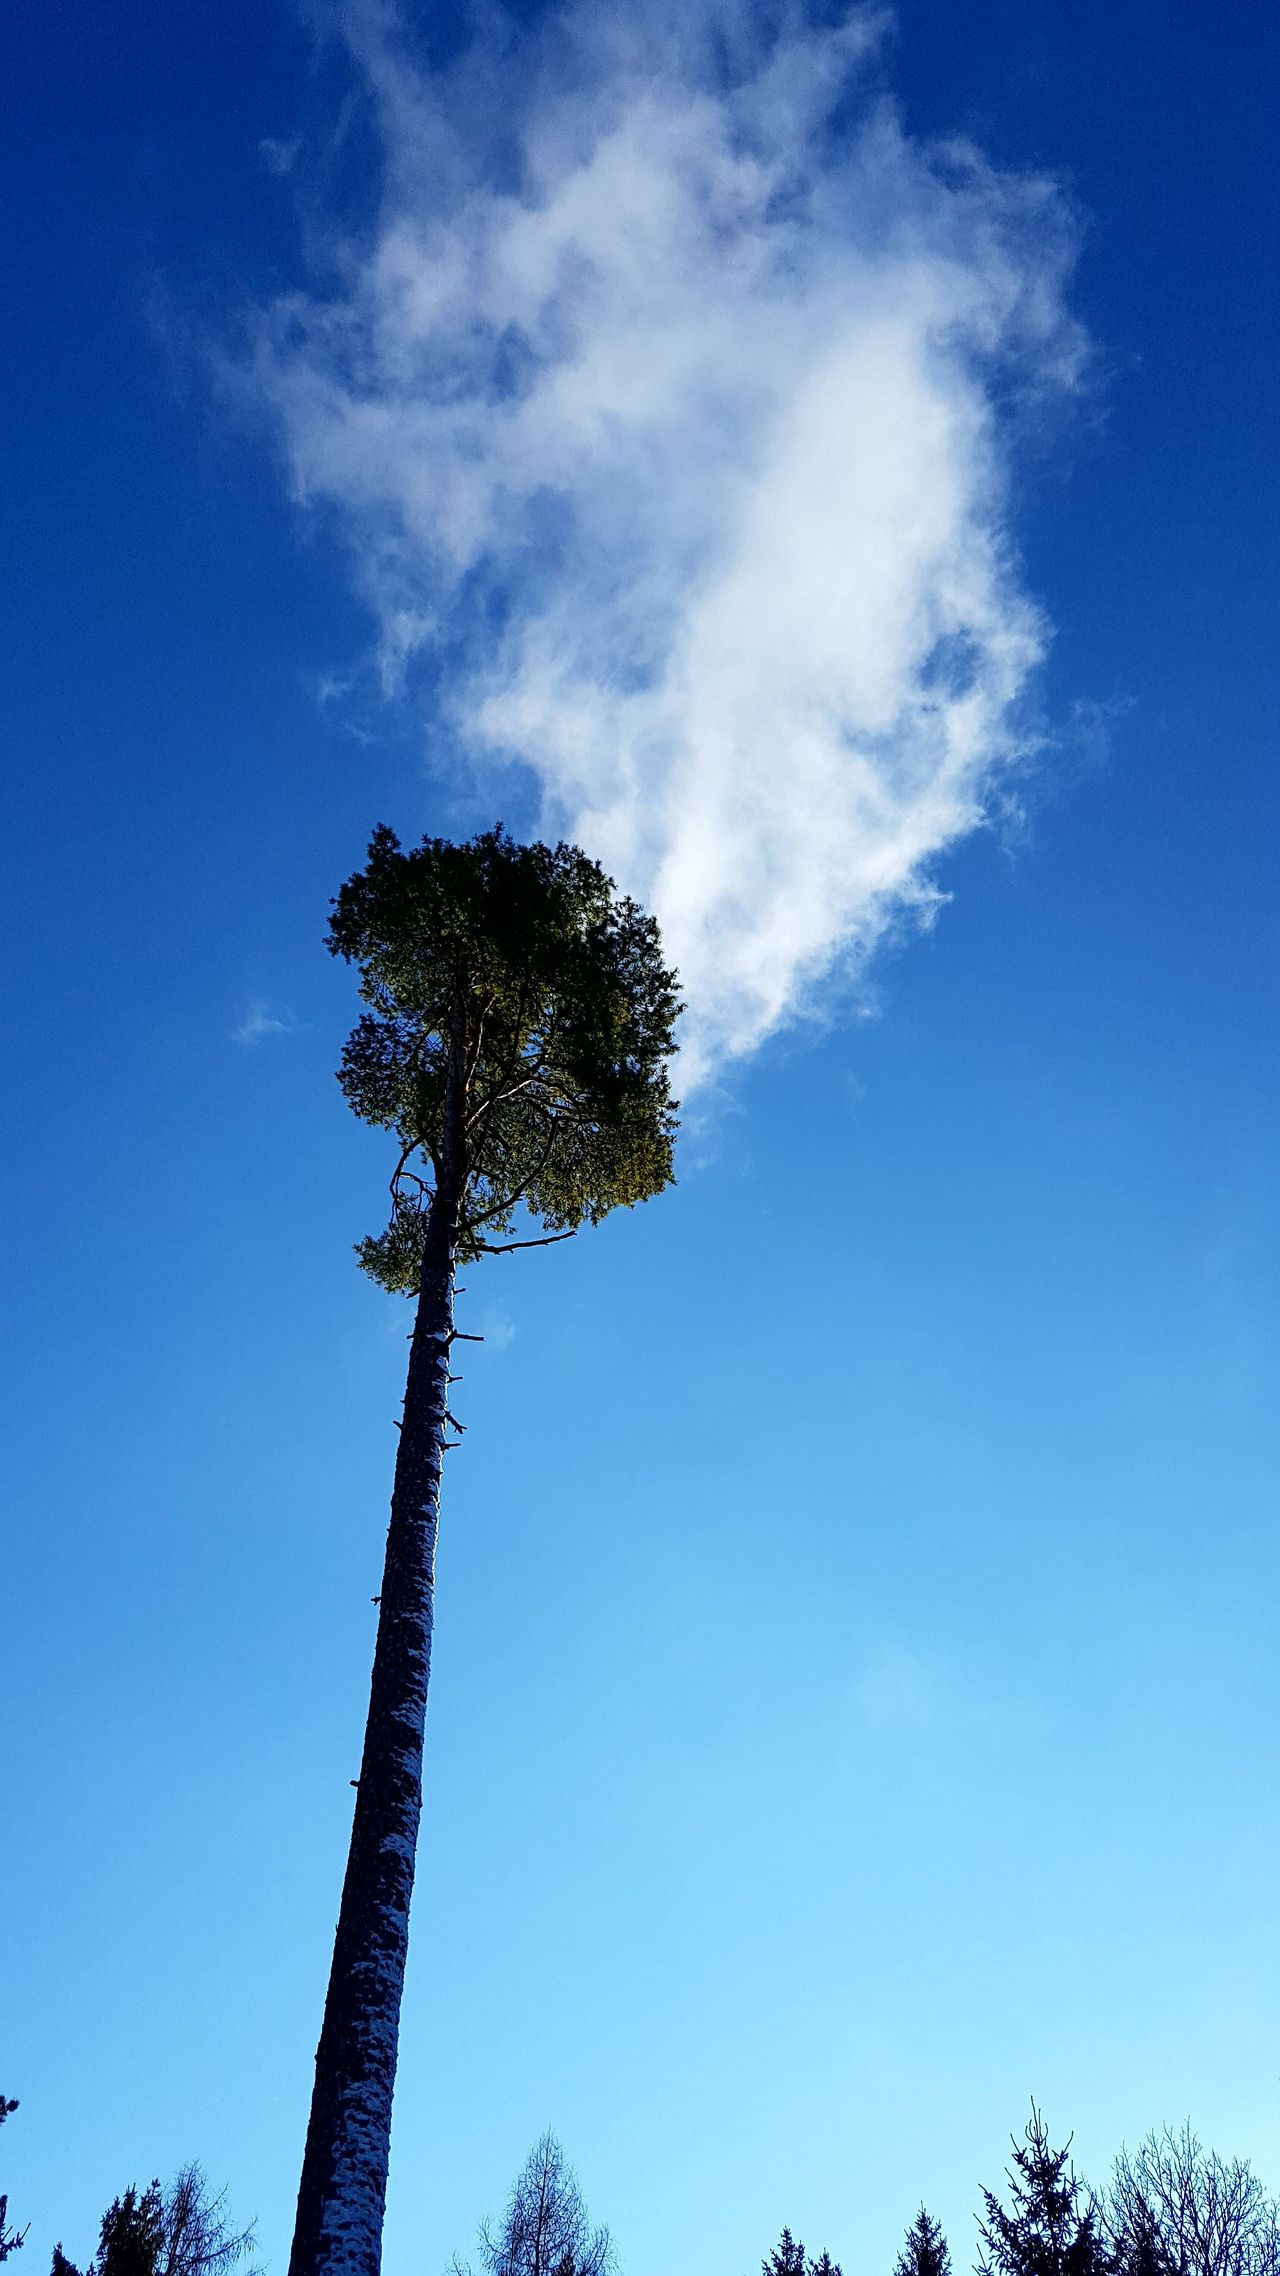 Beauty In Nature Blue Cloud - Sky Day Low Angle View Nature No People Outdoors Photo Art Sky Smoke Smoking Tree  Tree